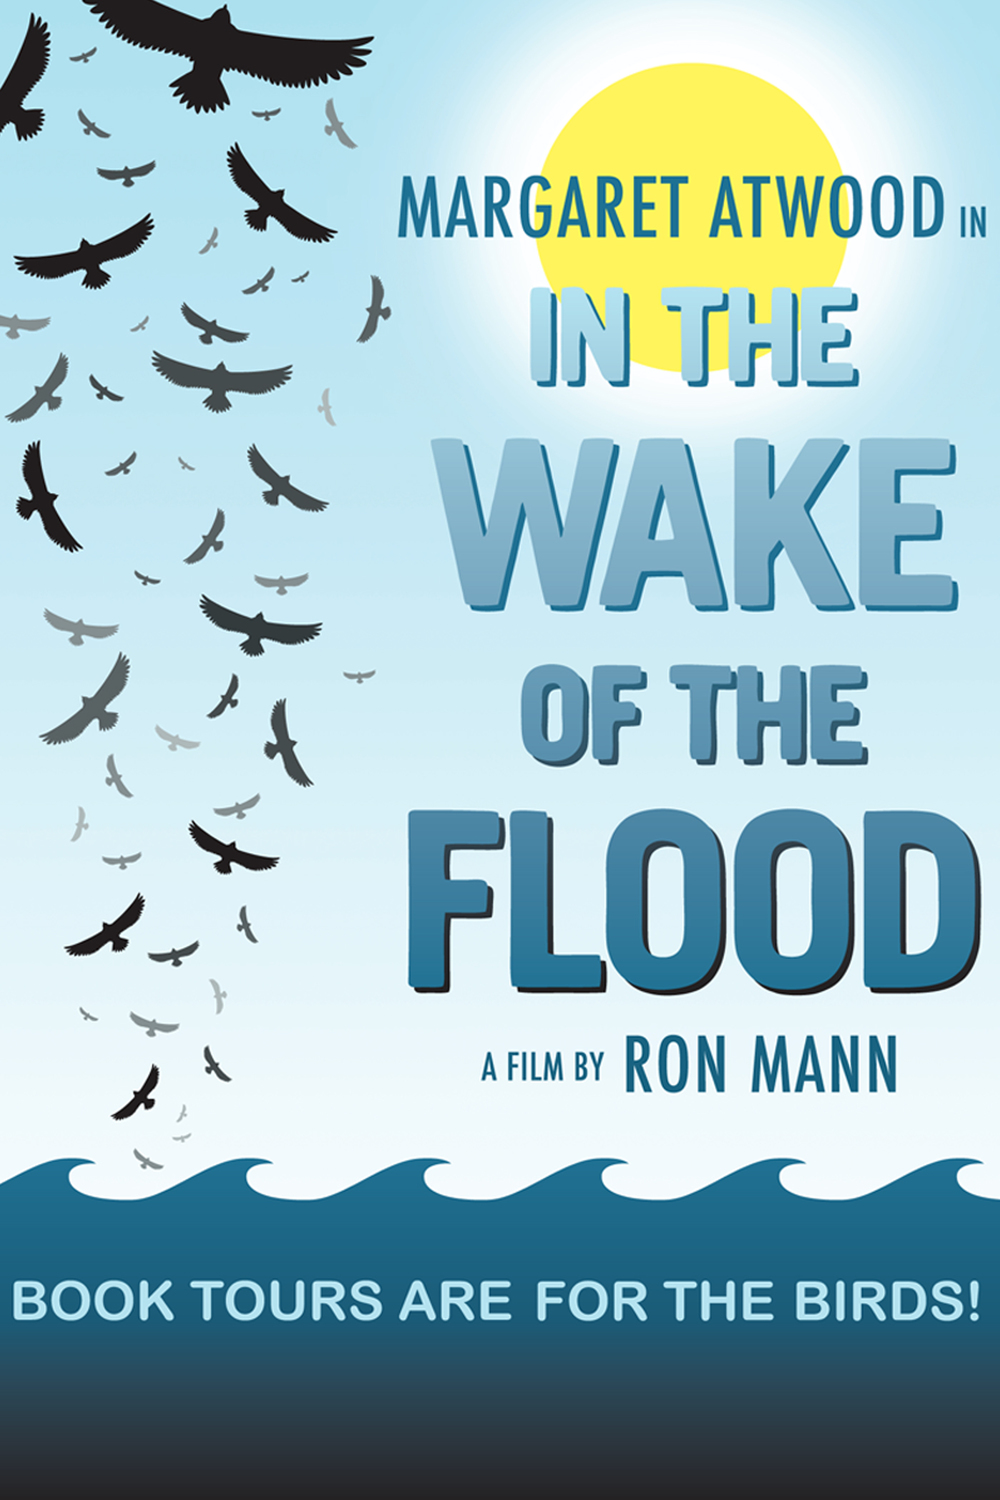 wakeoftheflood copy.jpg